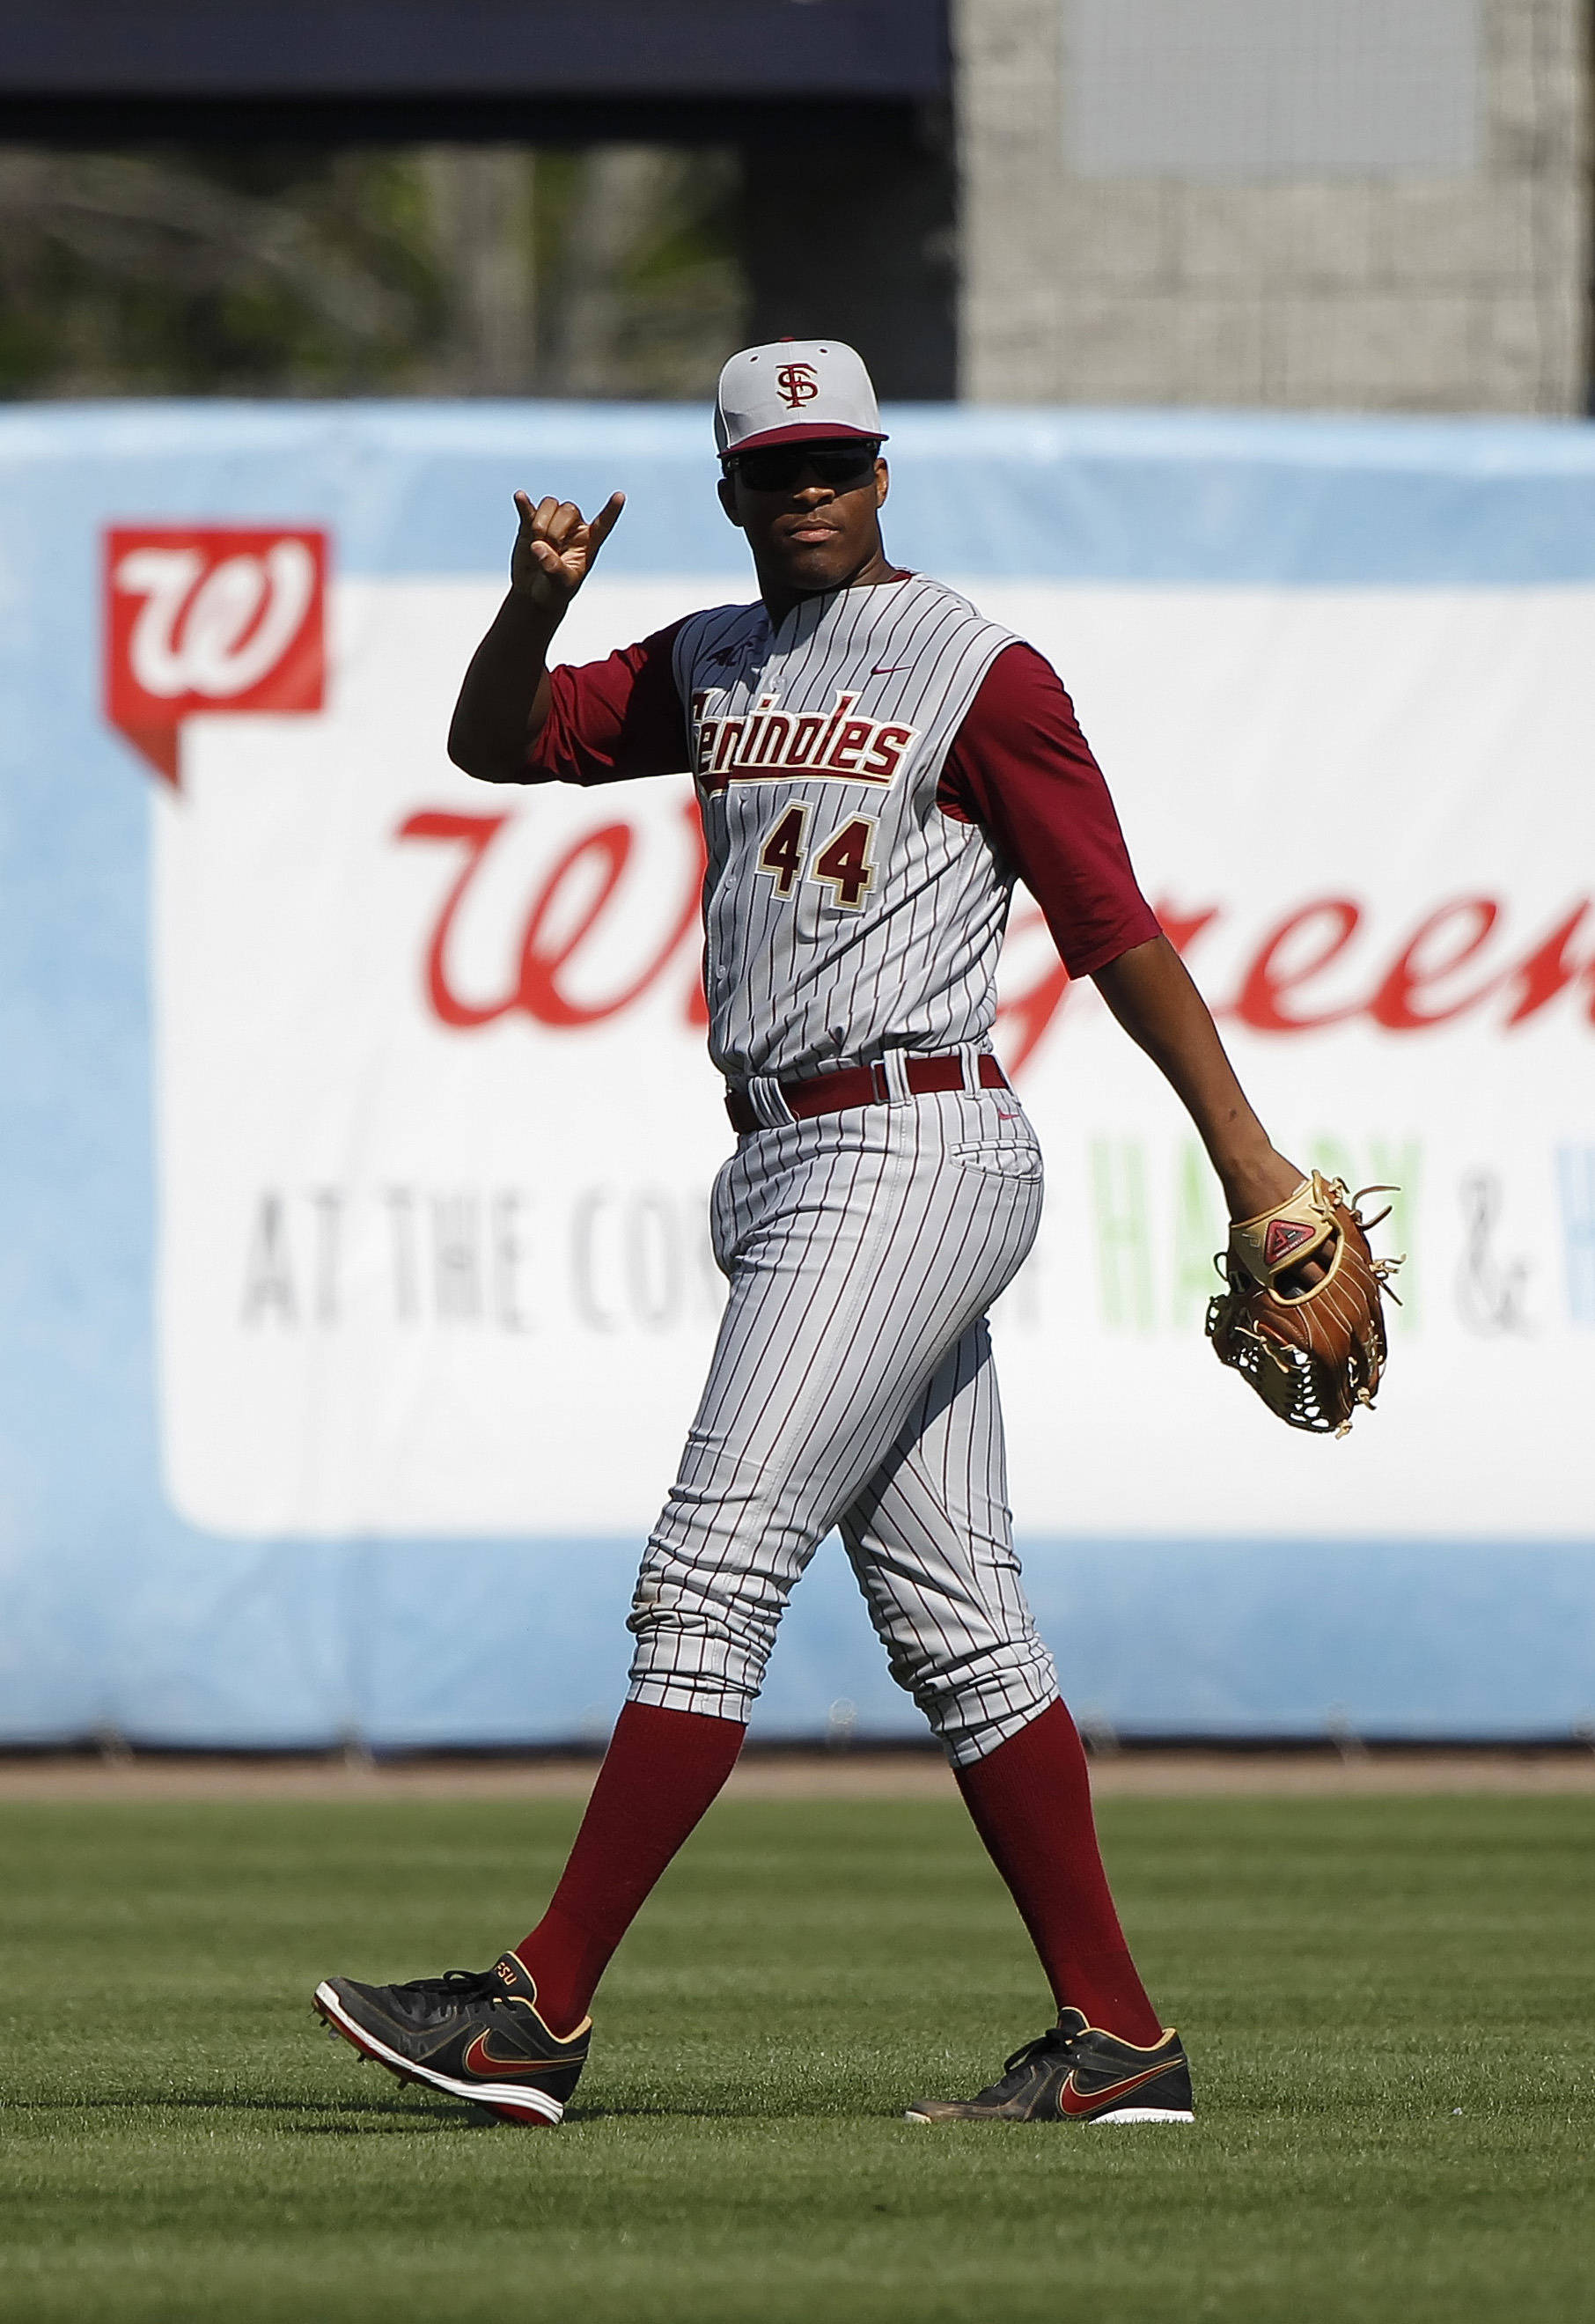 Feb 25, 2014; Tampa, FL, USA;  Florida State Seminoles pitcher/outfielder Jameis Winston (44) reacts after two outs during the fifth inning against the New York Yankees at George M. Steinbrenner Field. Mandatory Credit: Kim Klement-USA TODAY Sports